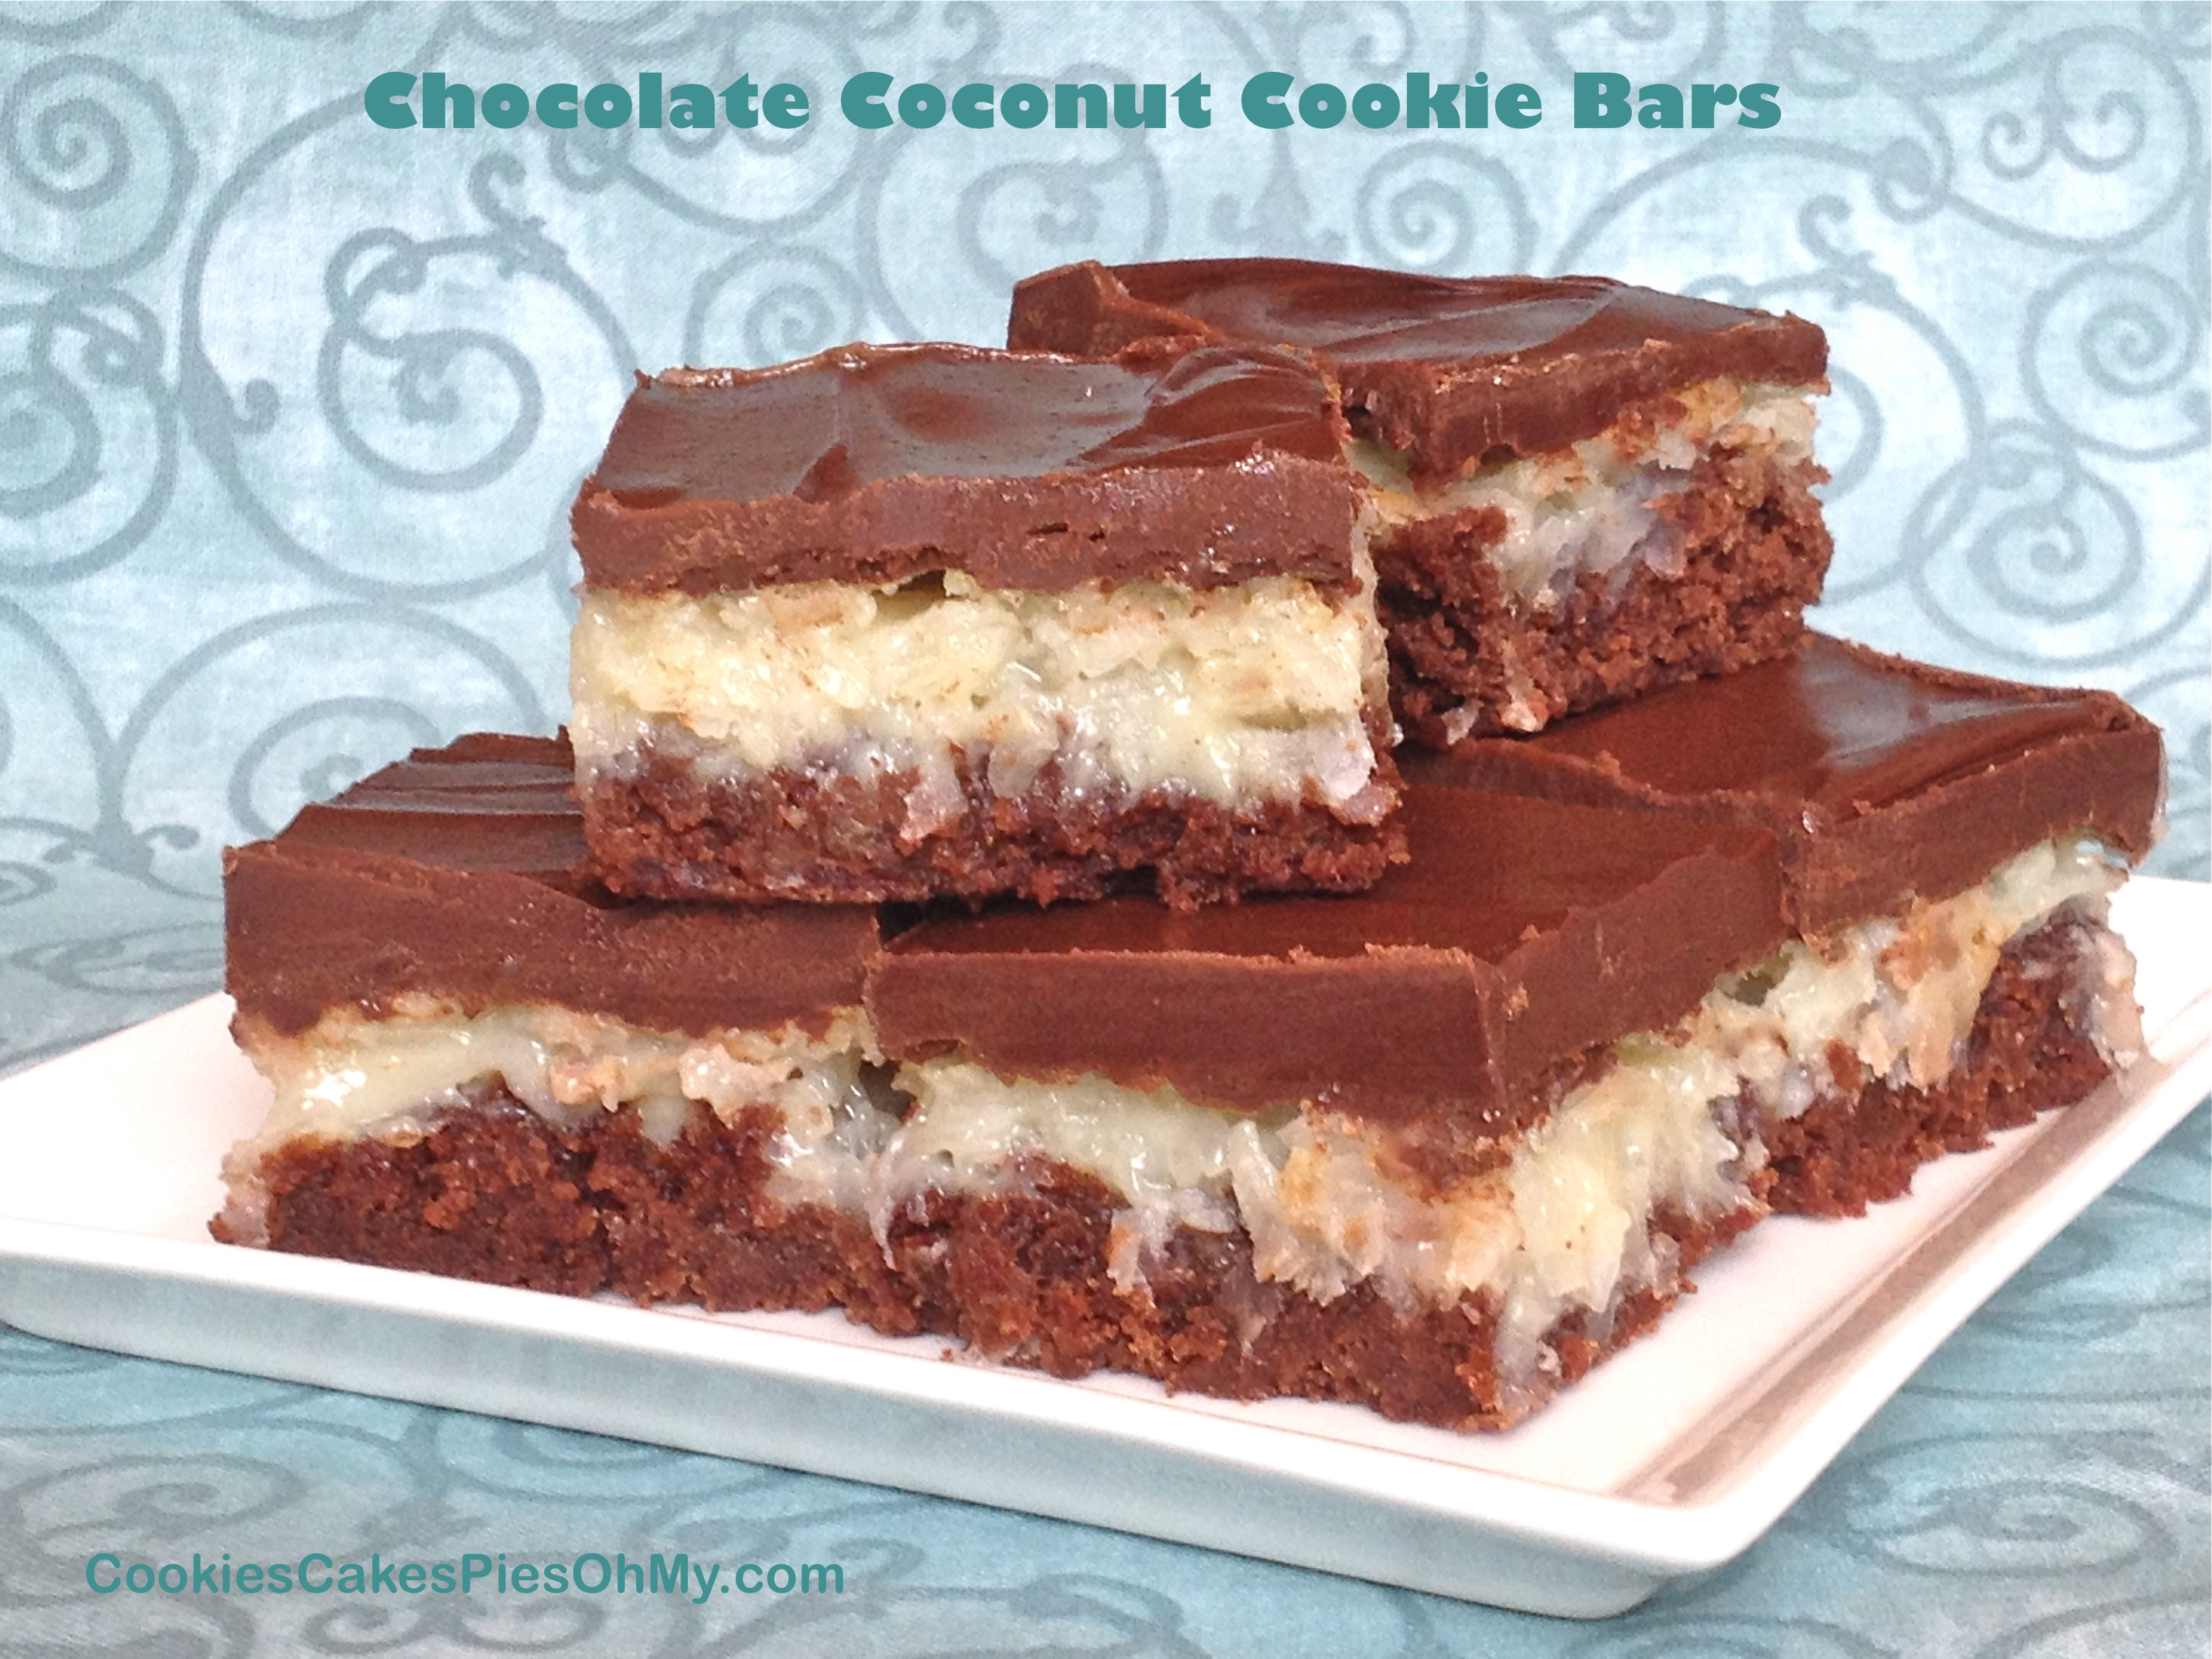 Chocolate Coconut Cookie Bars | CookiesCakesPiesOhMy